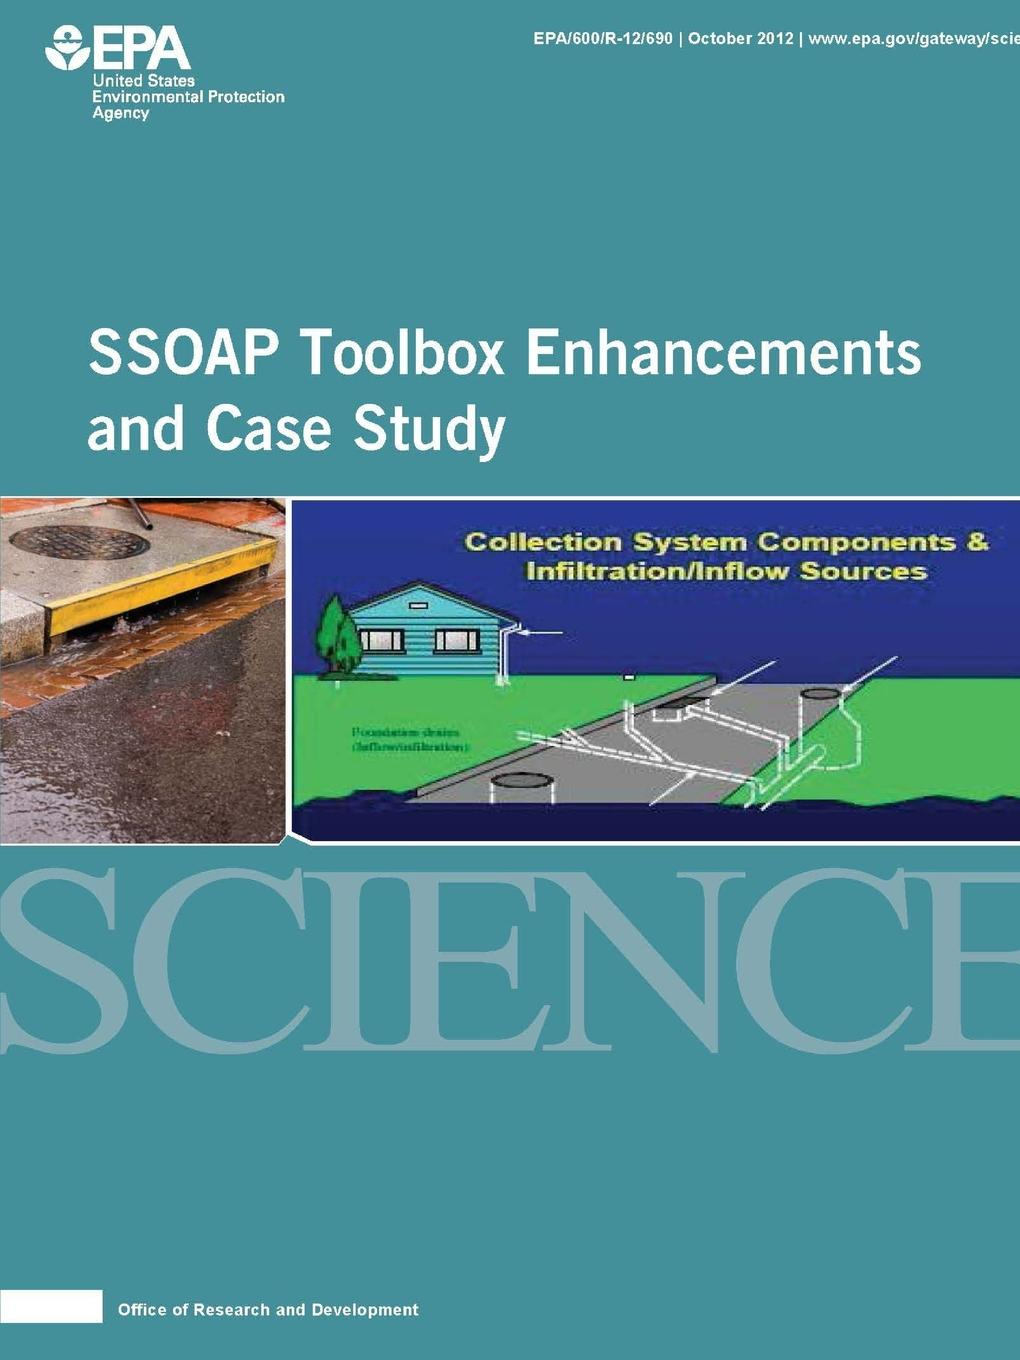 U.S. Environmental Protection Agenc EPA SSOAP Toolbox Enhancements and Case Study